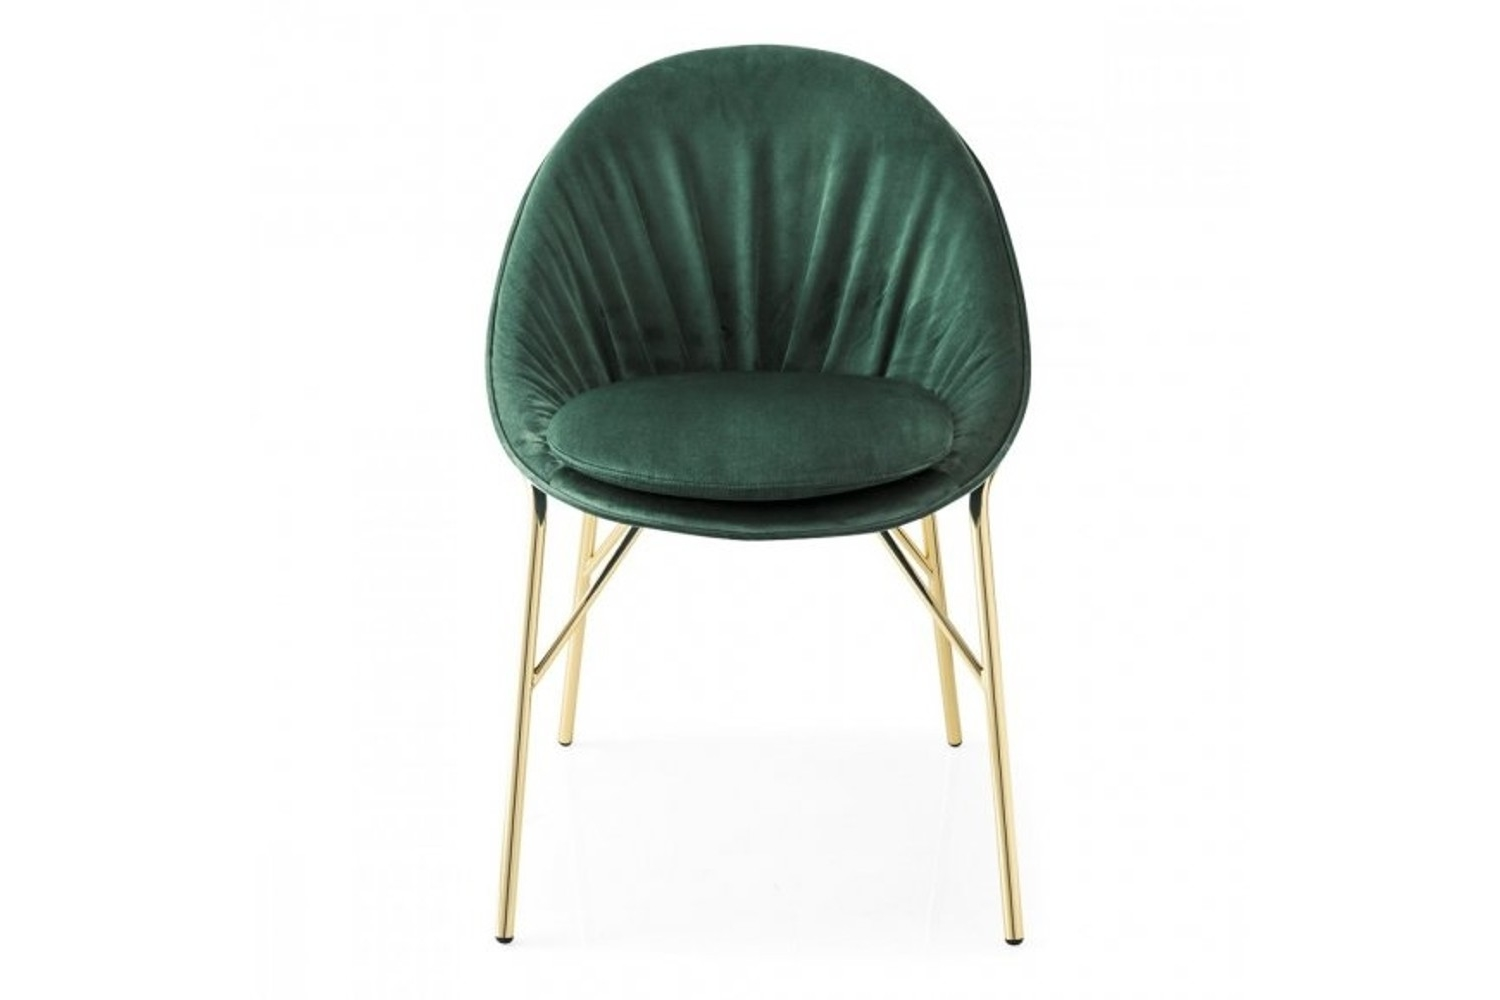 Lilly%20Dining%20Chair%20Green%20Velvet%20with%20Polished%20brass%20legs.jpg Lilly Dining Chair green velvet with Polished brass metal legs Lilly%20Dining%20Chair%20Green%20Velvet%20with%20Polished%20brass%20legs.jpg